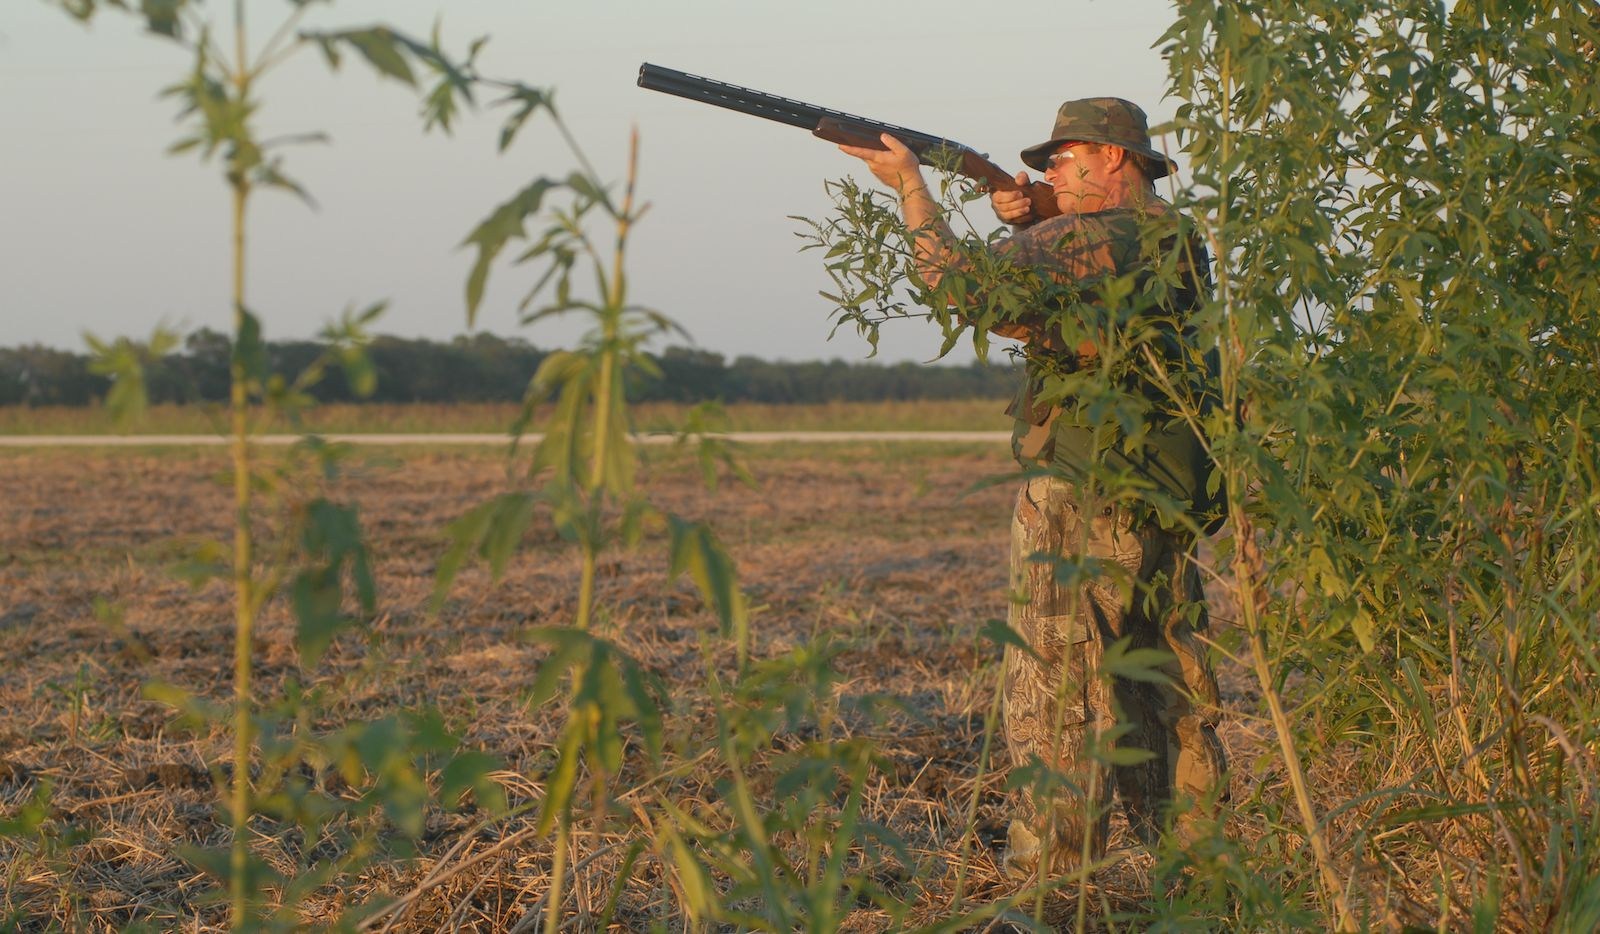 Dove season gets under way at 30 minutes before sunrise on Sept. 1 in most of Texas. Nearly 273,000 hunters went afield last year and killed nearly 6 million doves, including about 3.8 million mourning doves.